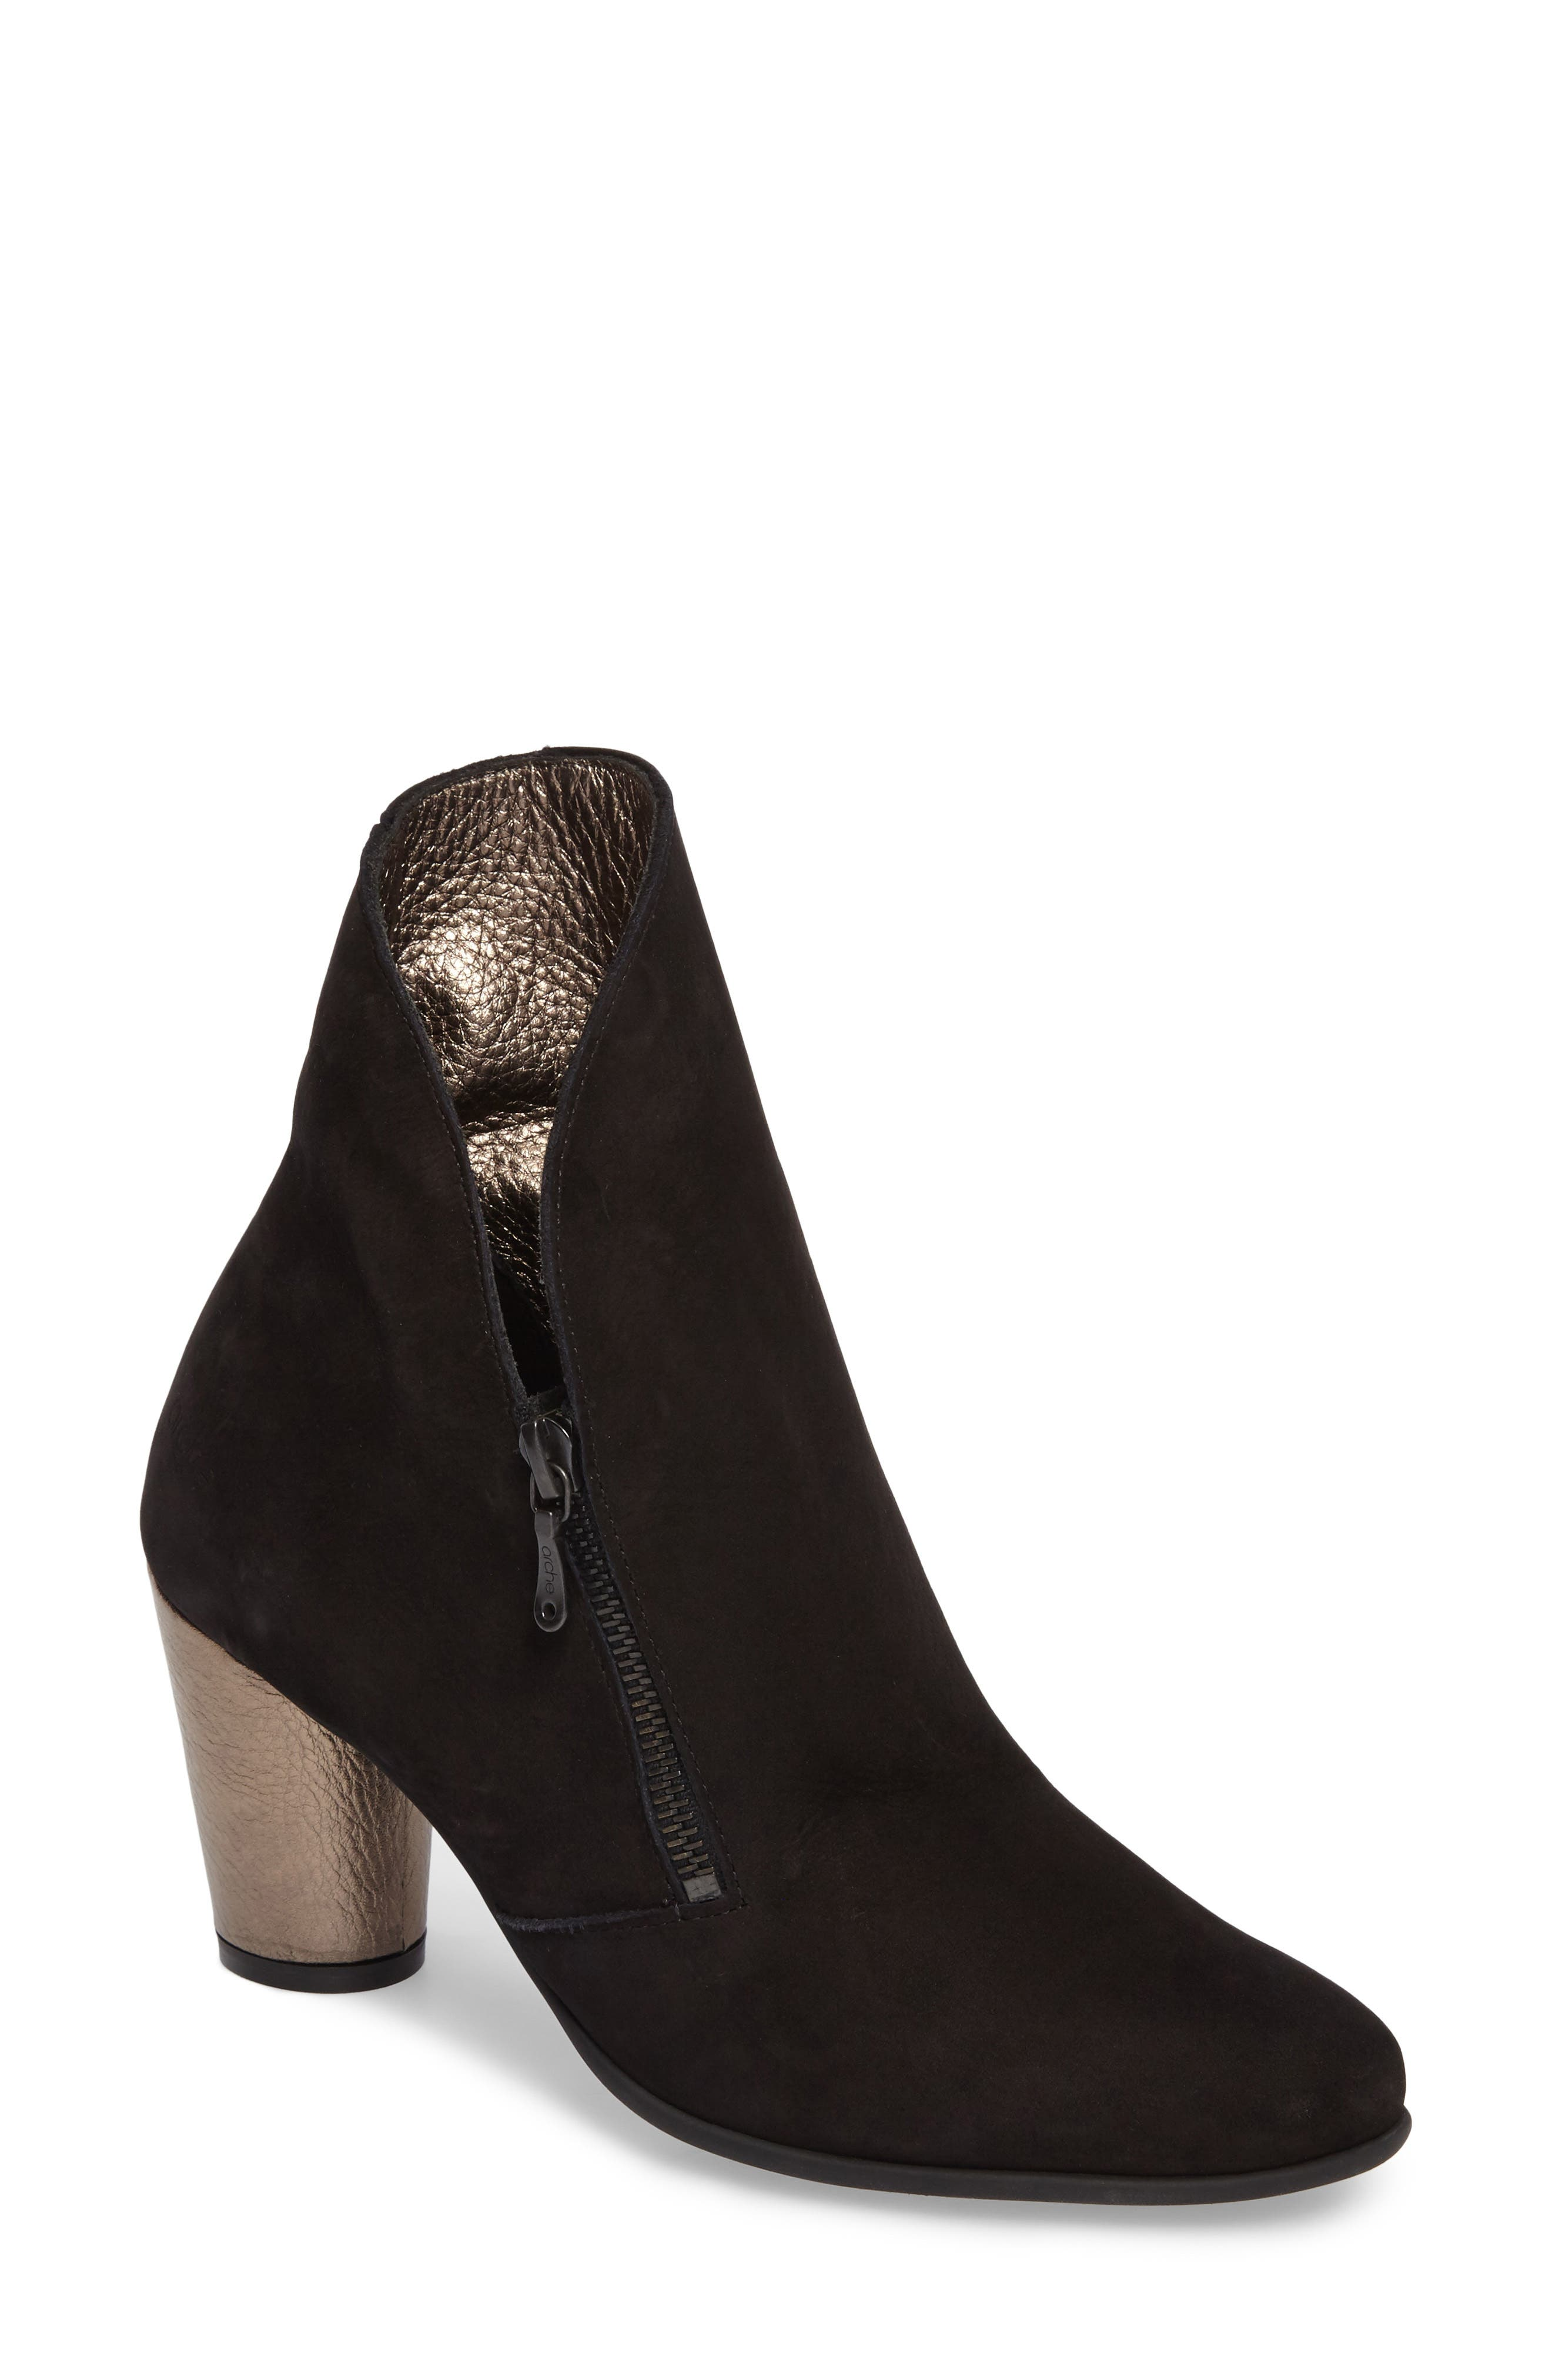 Klorol Bootie,                         Main,                         color,